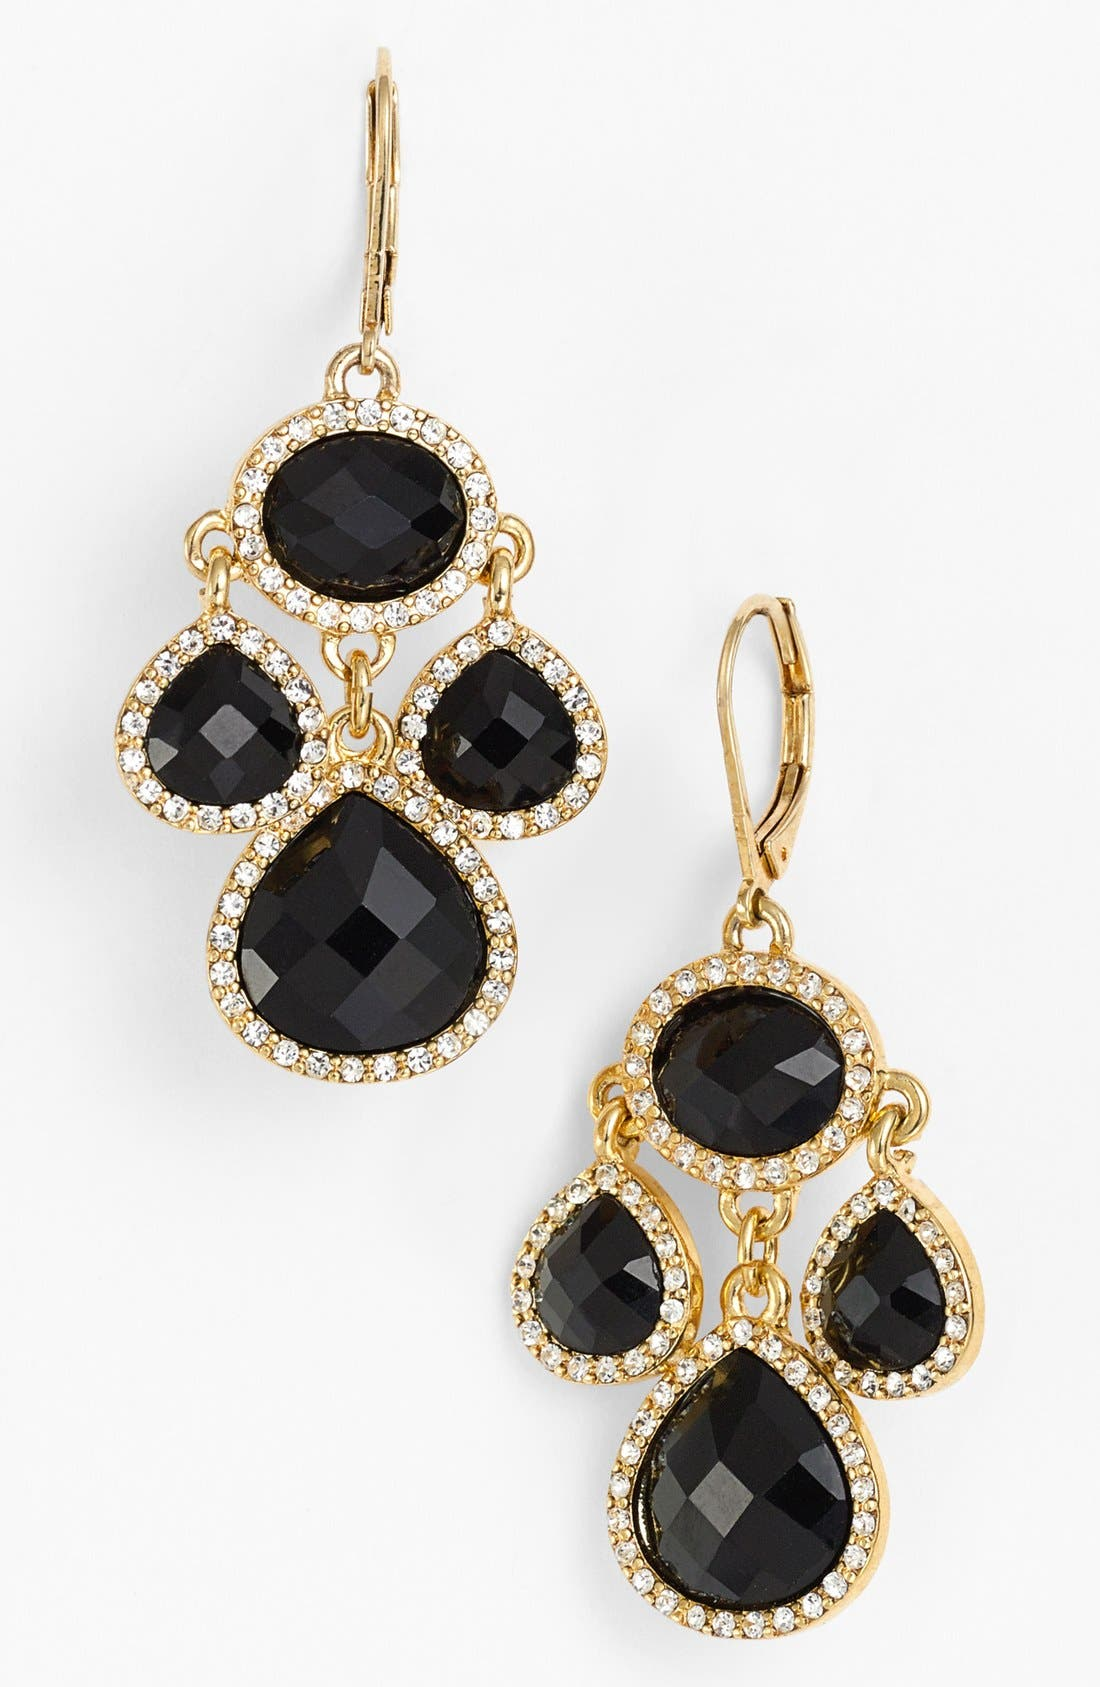 Main Image - Anne Klein Small Chandelier Earrings